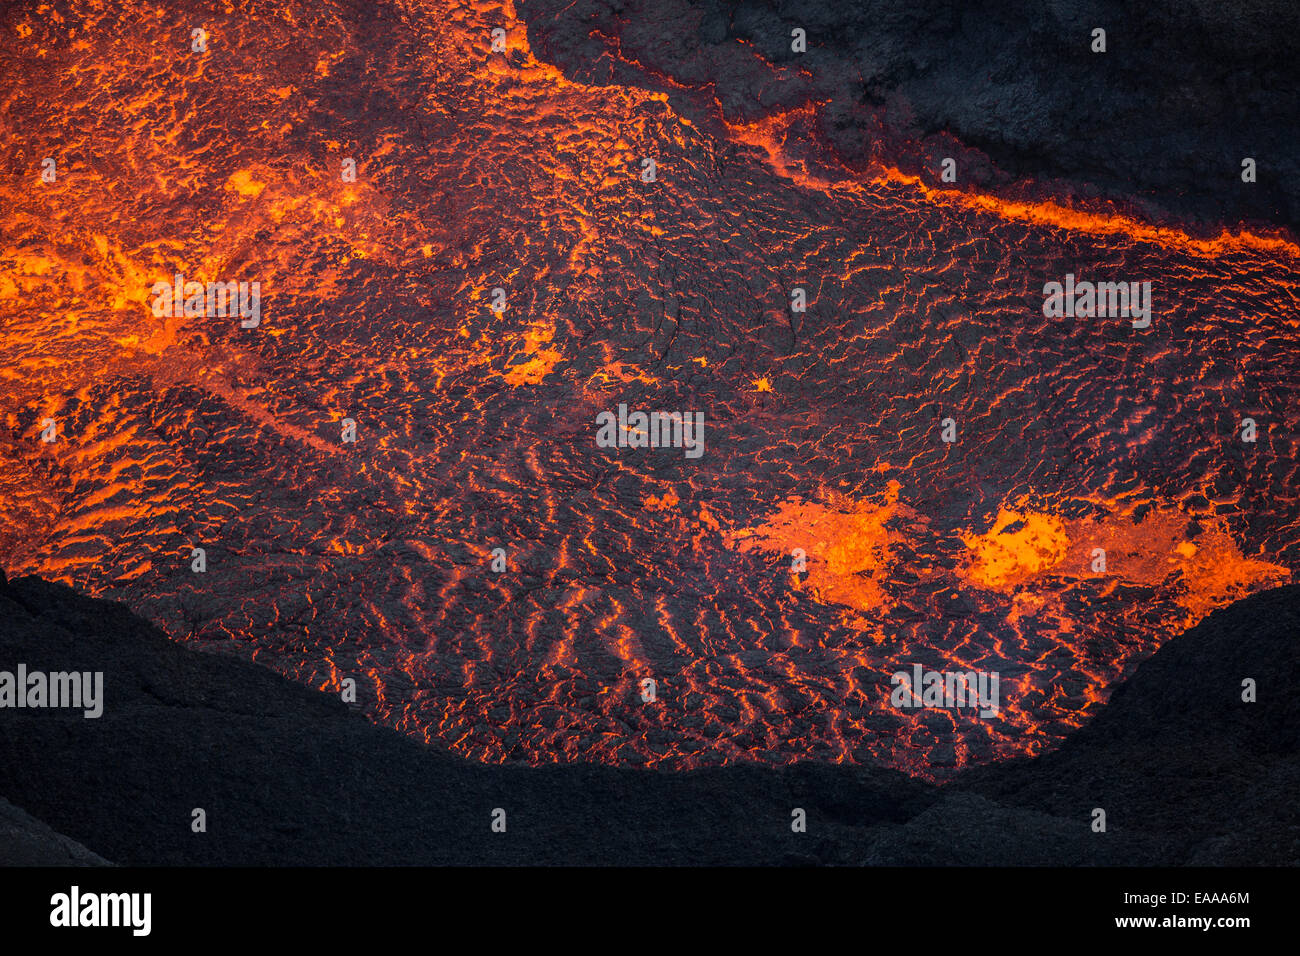 Aerial view of flowing lava, Holuhraun Fissure Eruption, Bardarbunga Volcano, Iceland Stock Photo